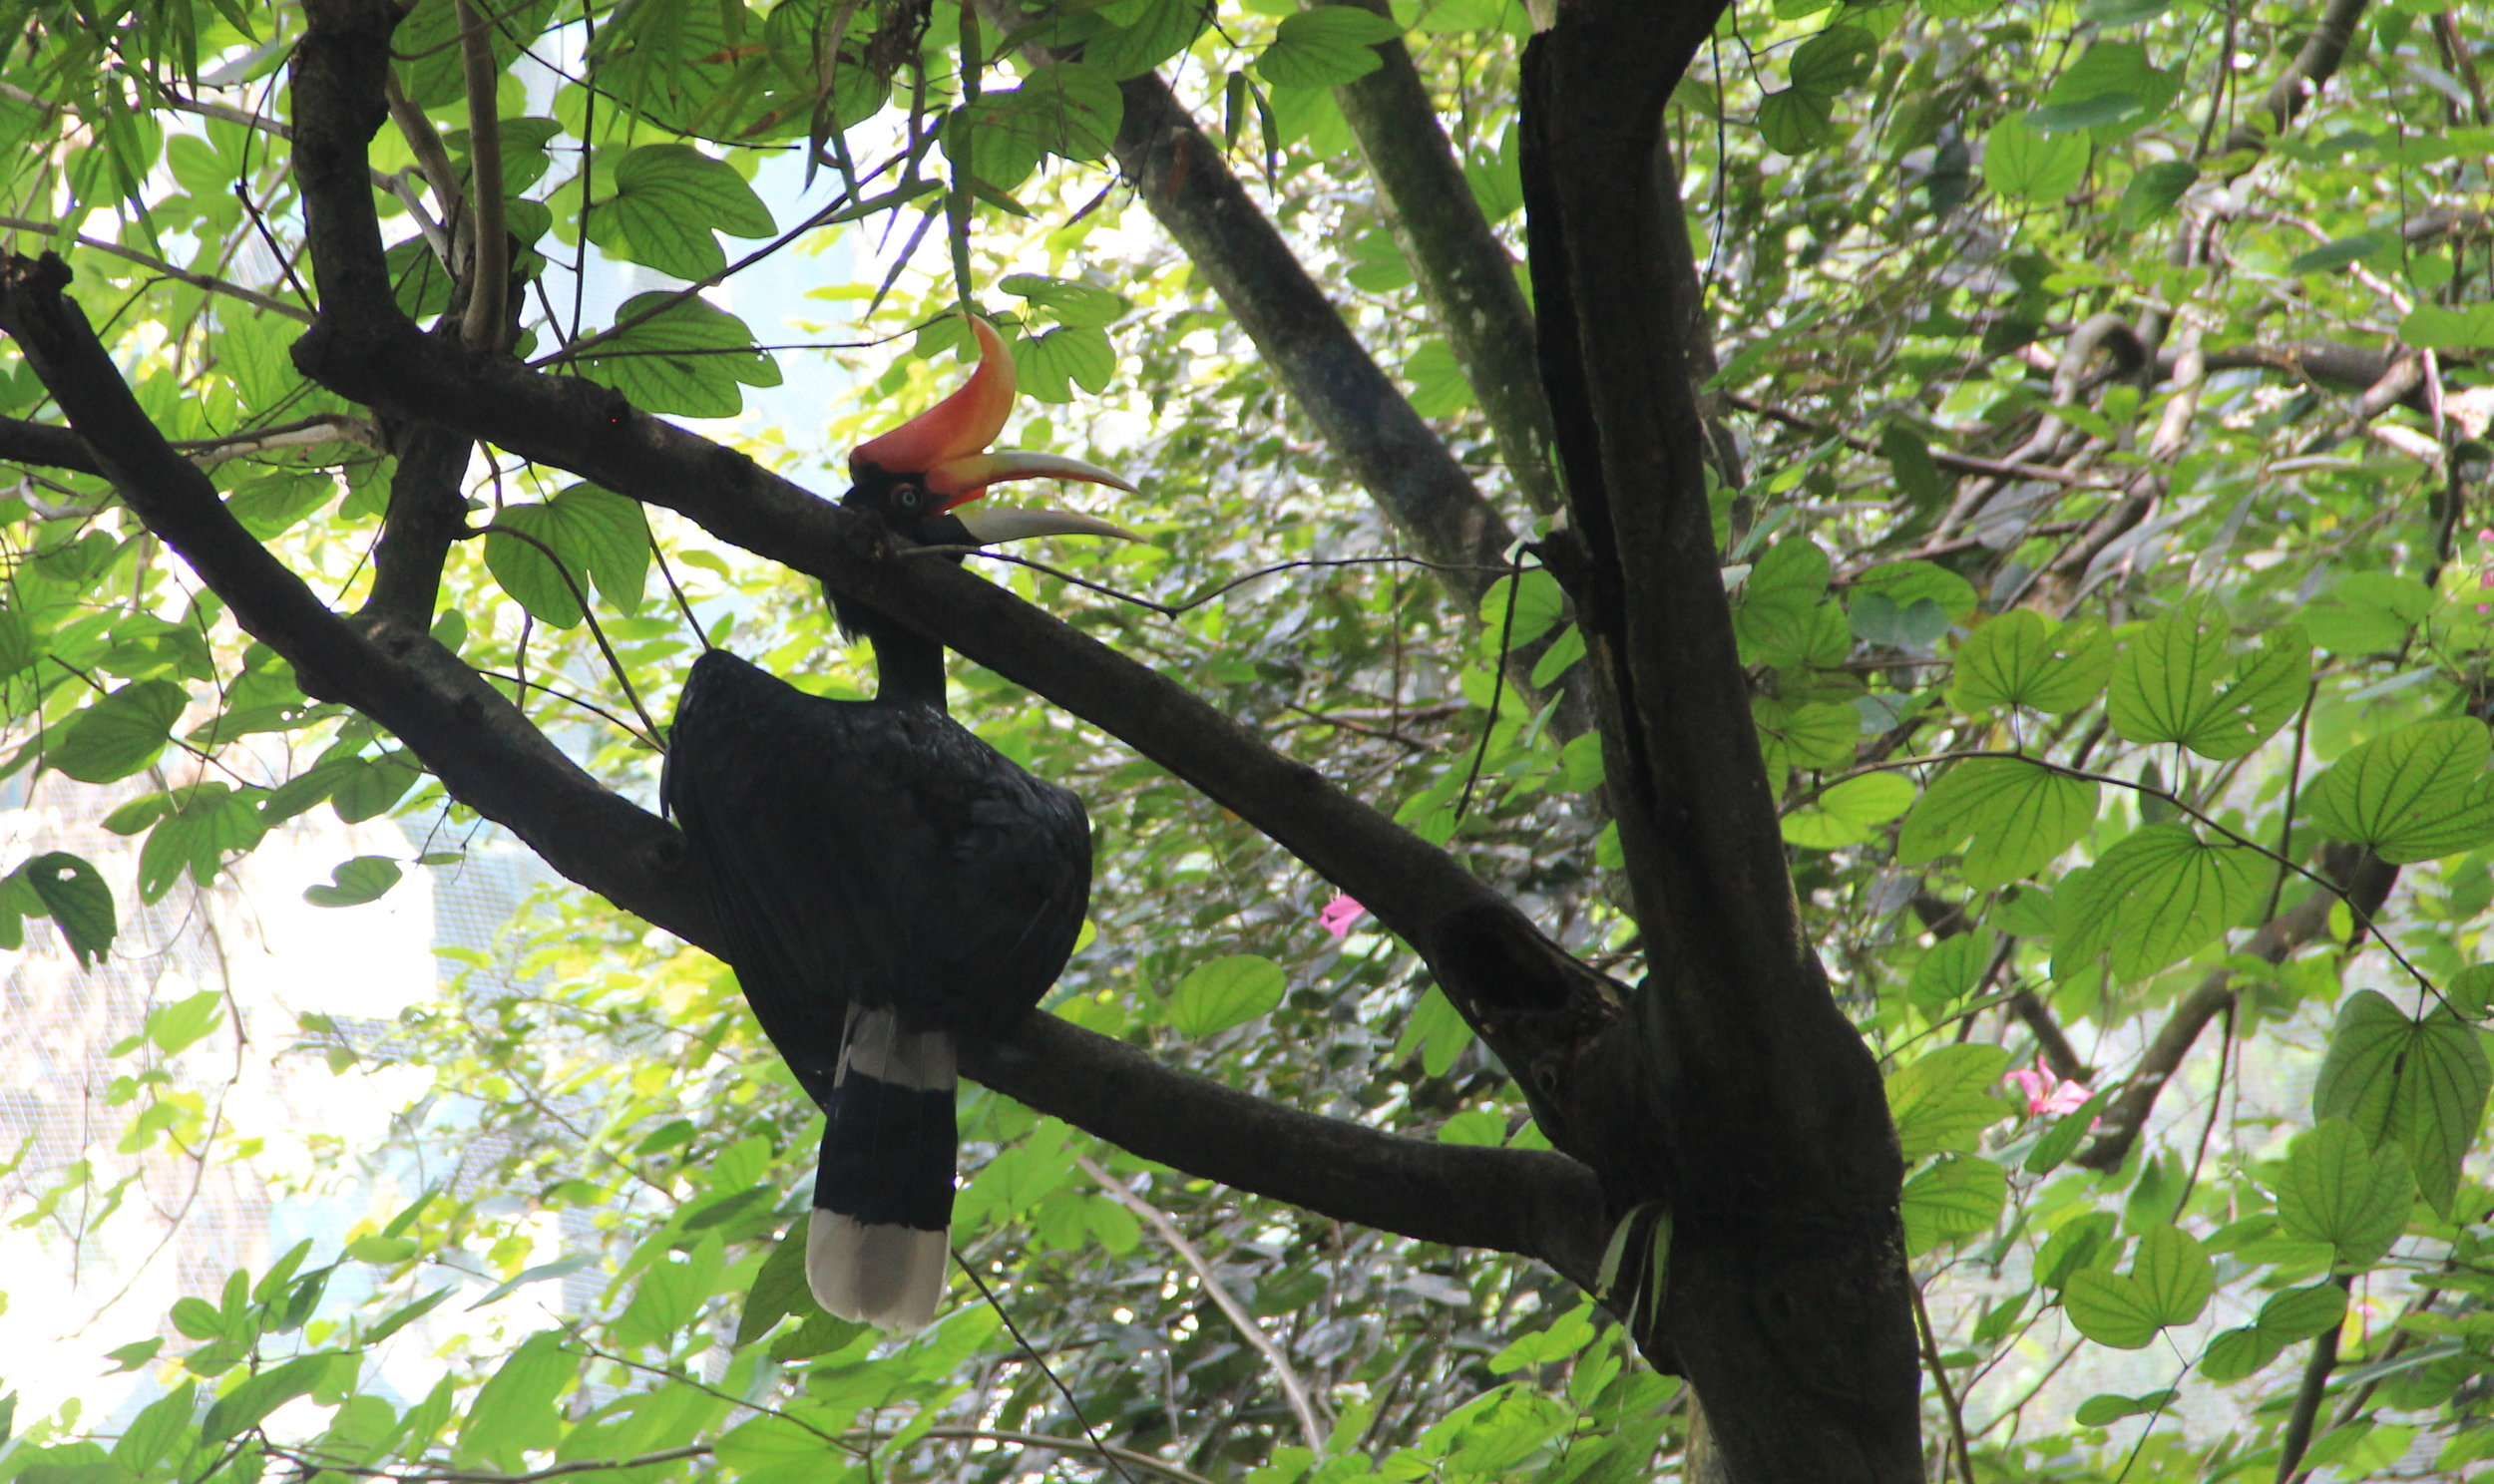 My personal favorite without which Malaysia trip would not have been a success - Rhinoceros Hornbill